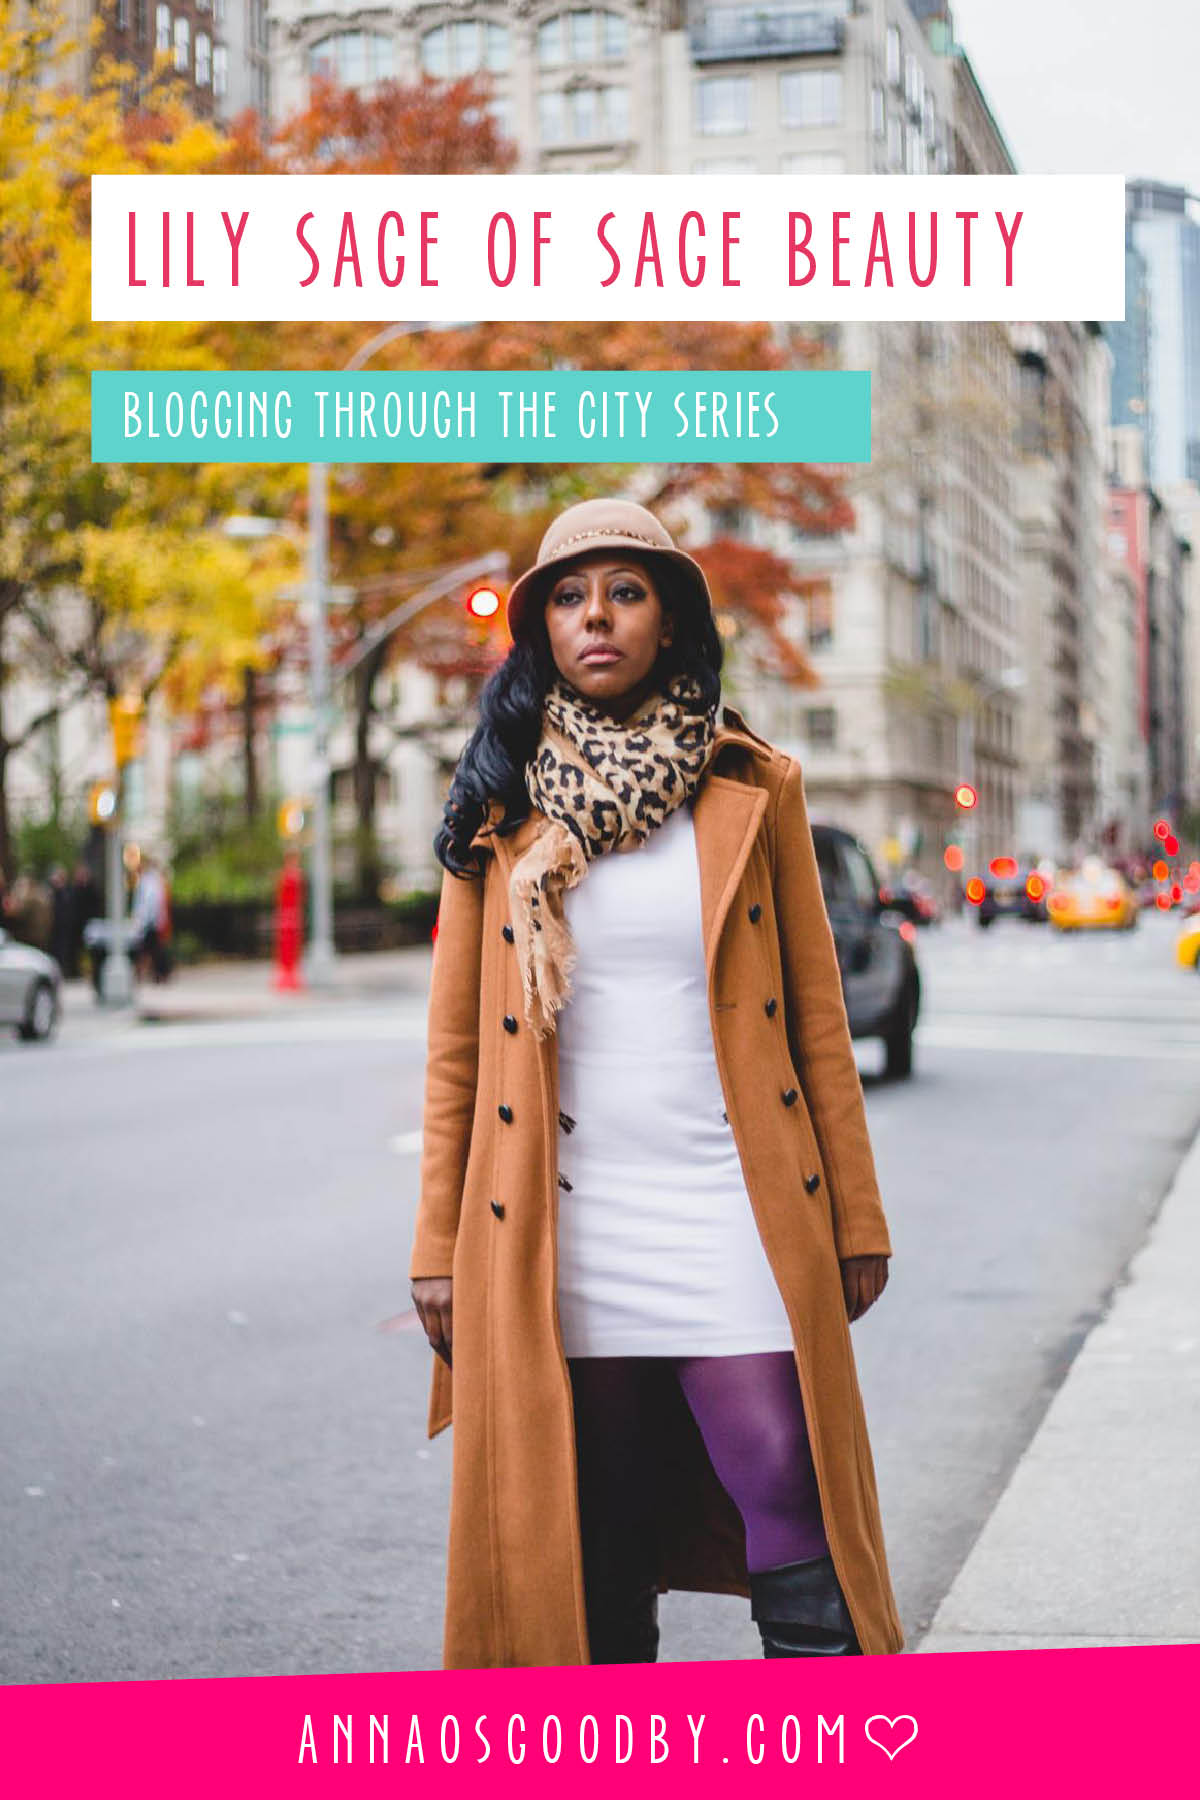 Anna Osgoodby Life + Design Blogging Through the City NYC Blogger Series :: Lily Sage of NYC Beauty Sage Beauty